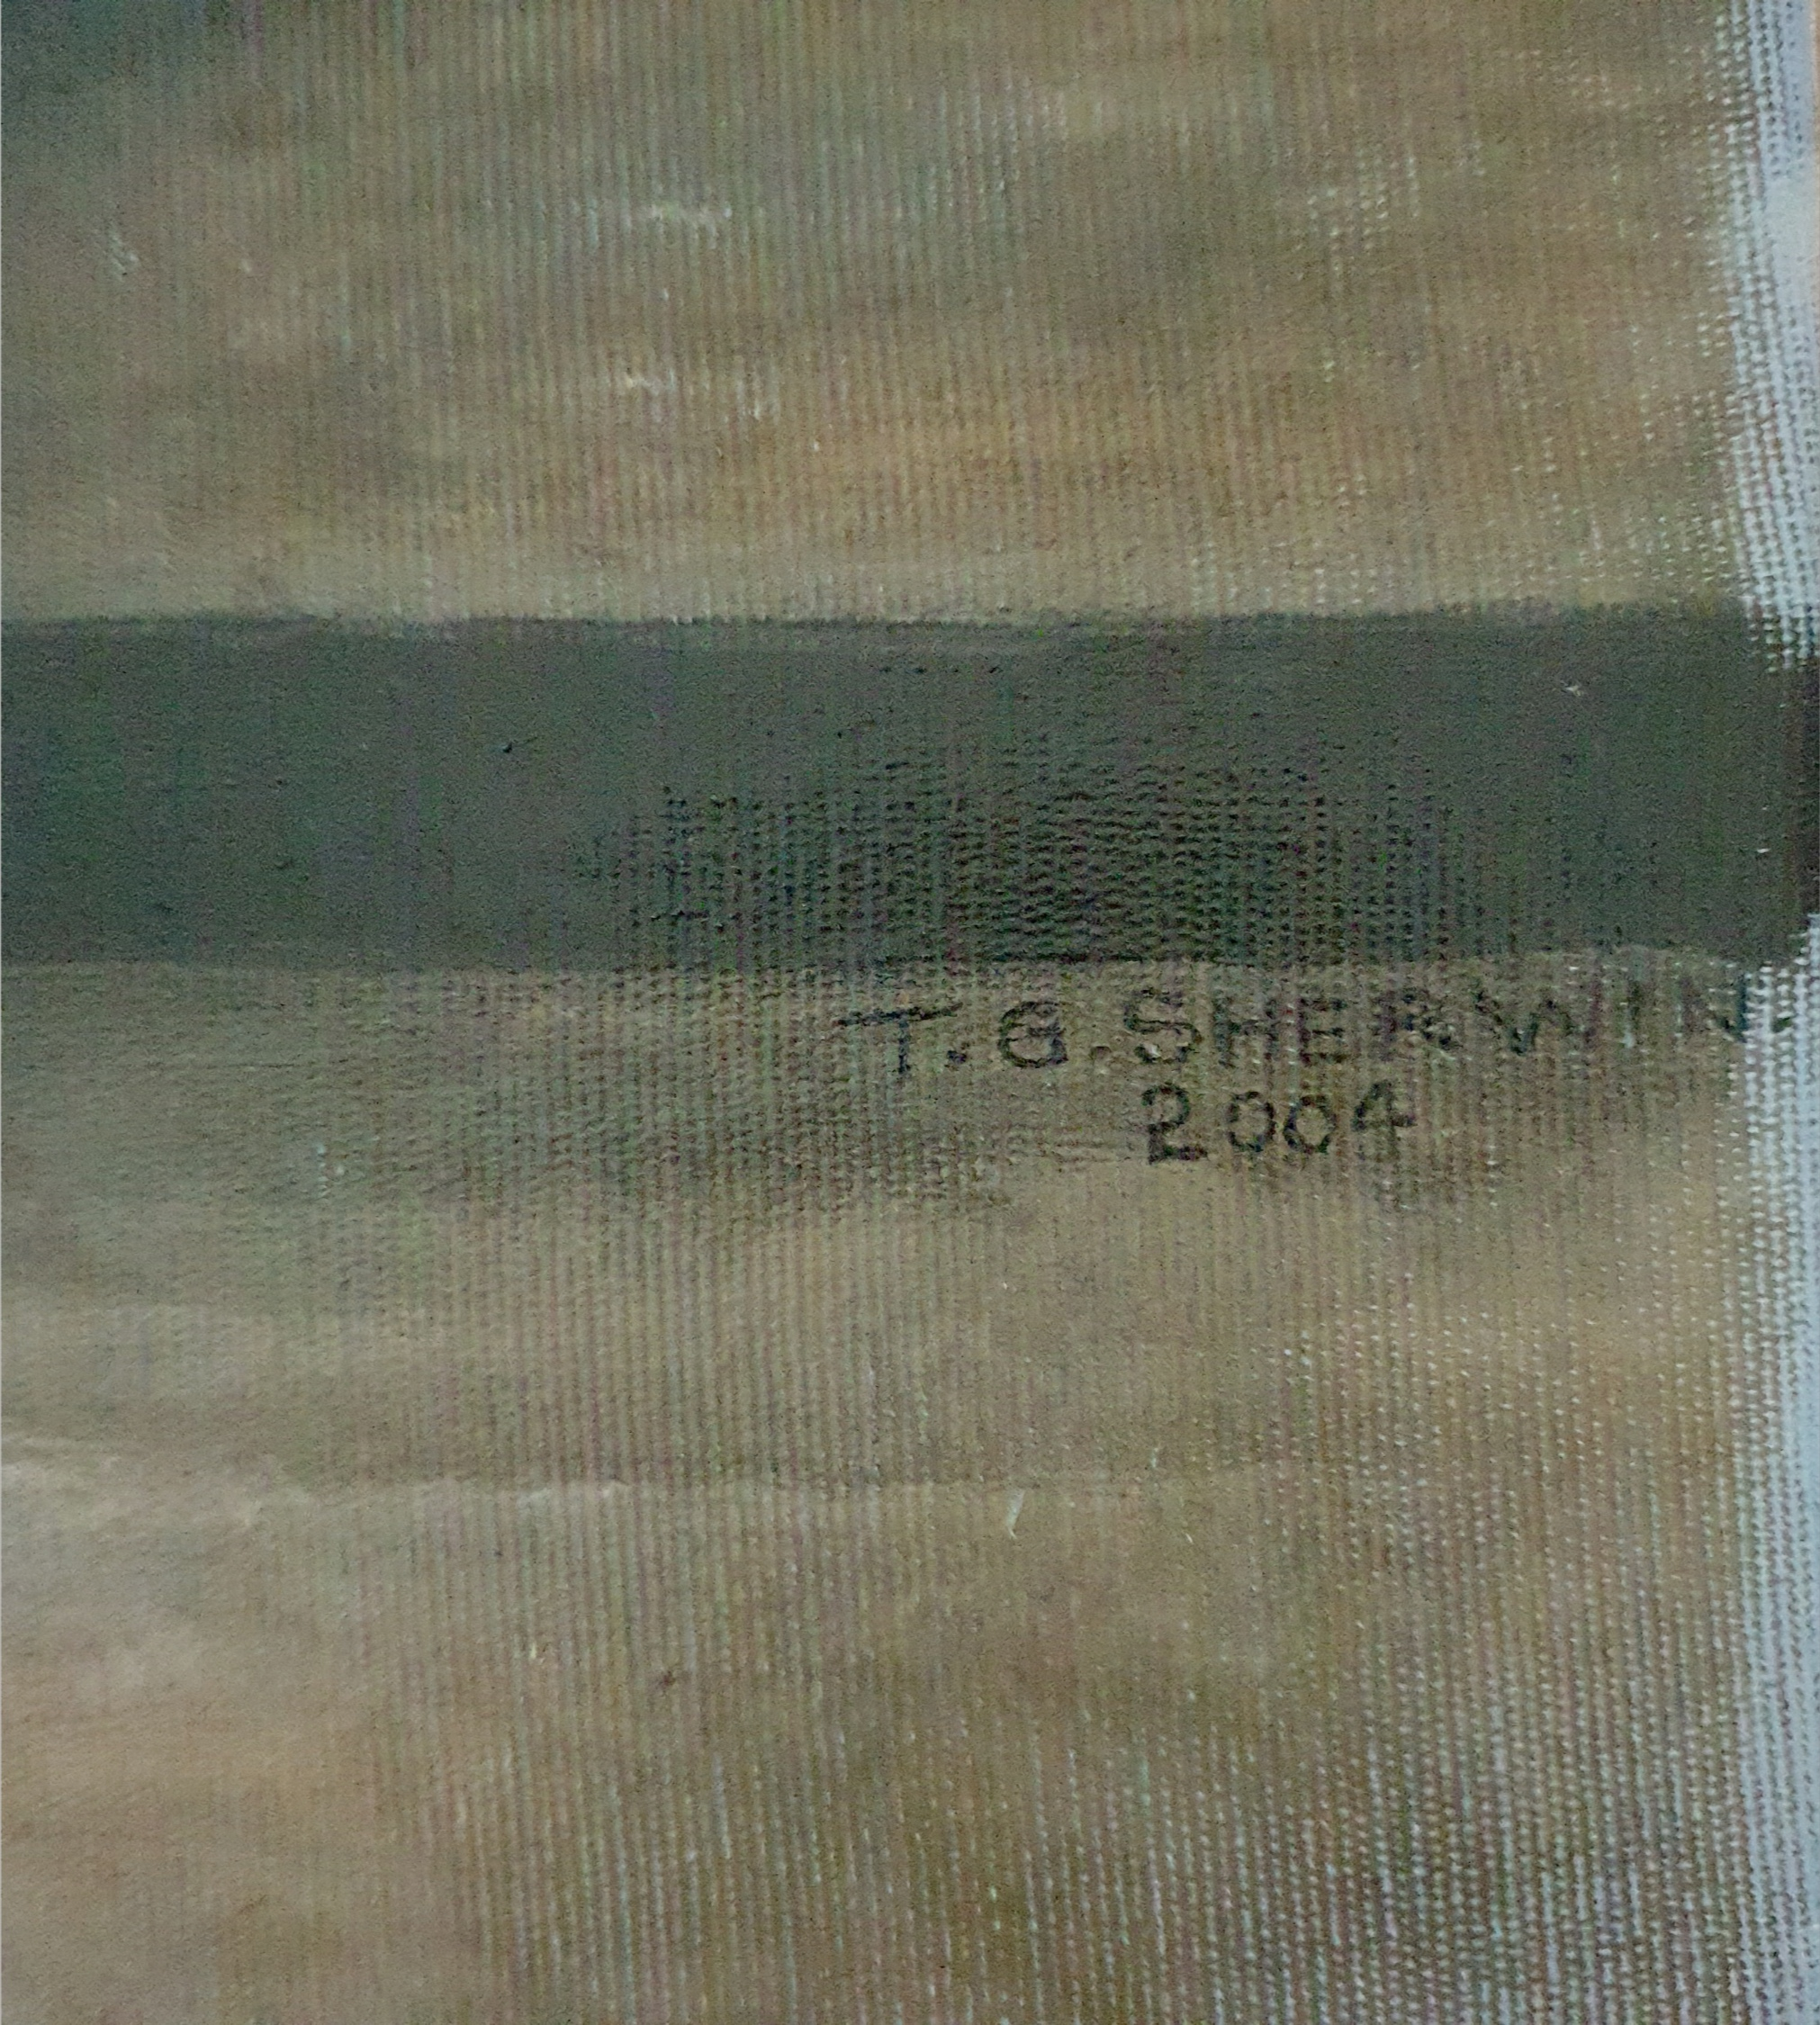 Vintage Art Painting Large Oil on Canvas Knights Templar Signed Lower Right T. G. Sherwin - Image 2 of 6